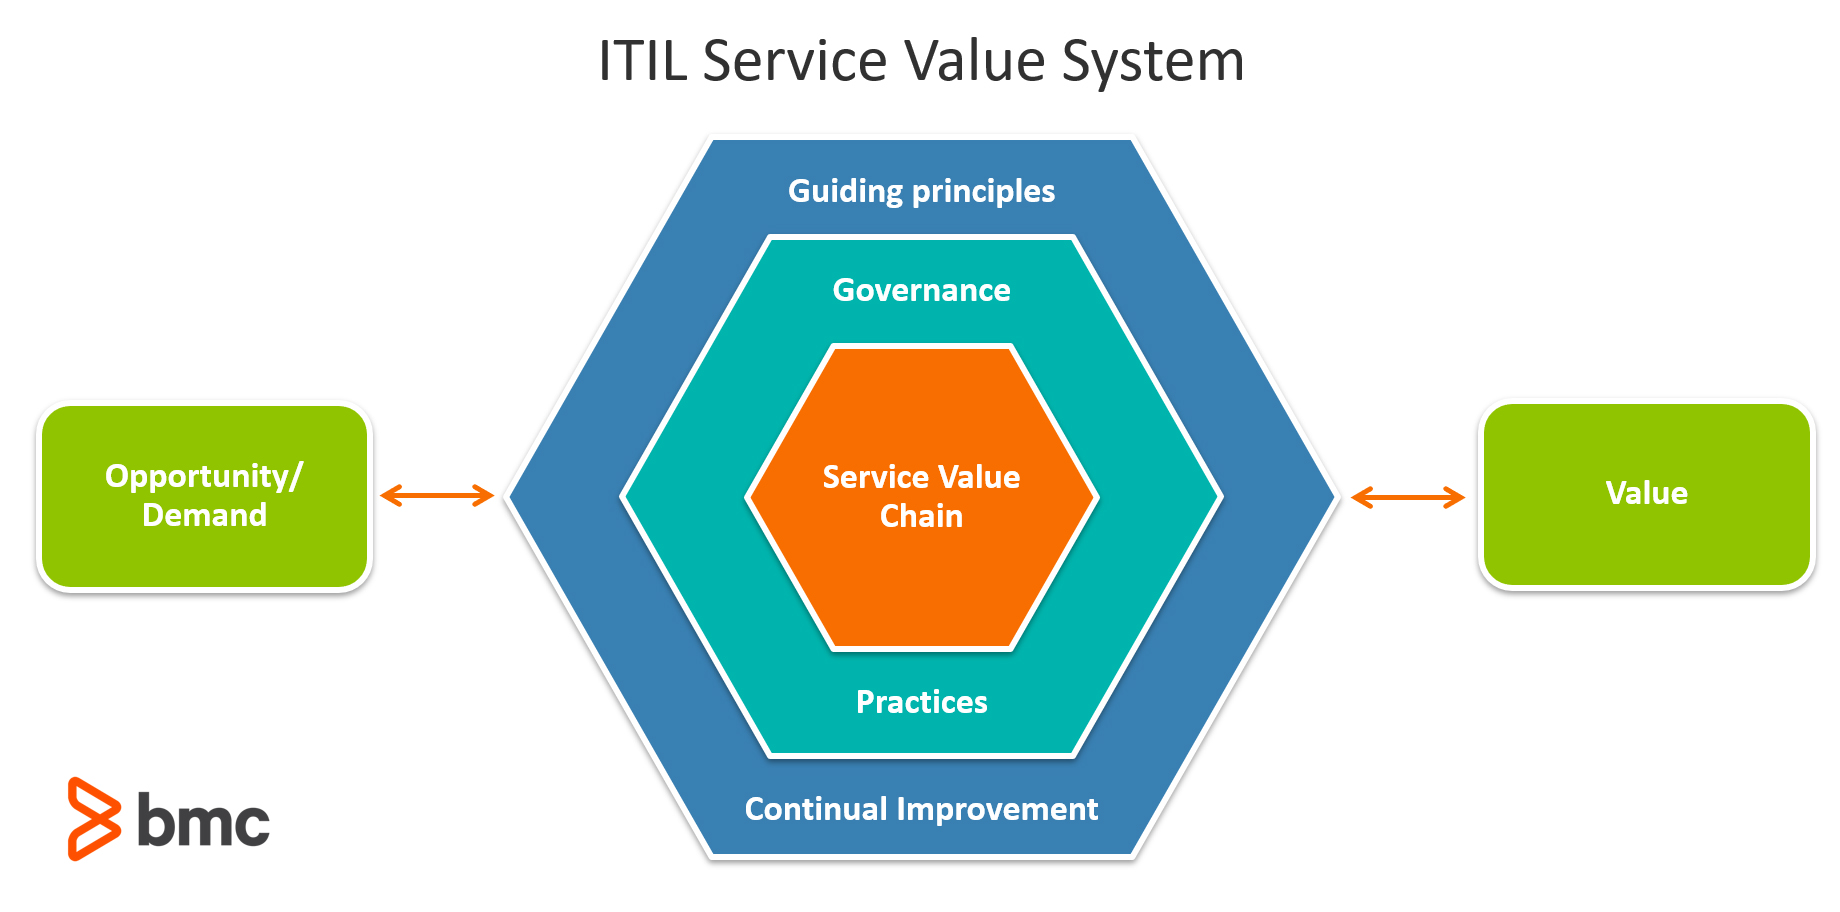 The ITIL Service Value System (SVS)